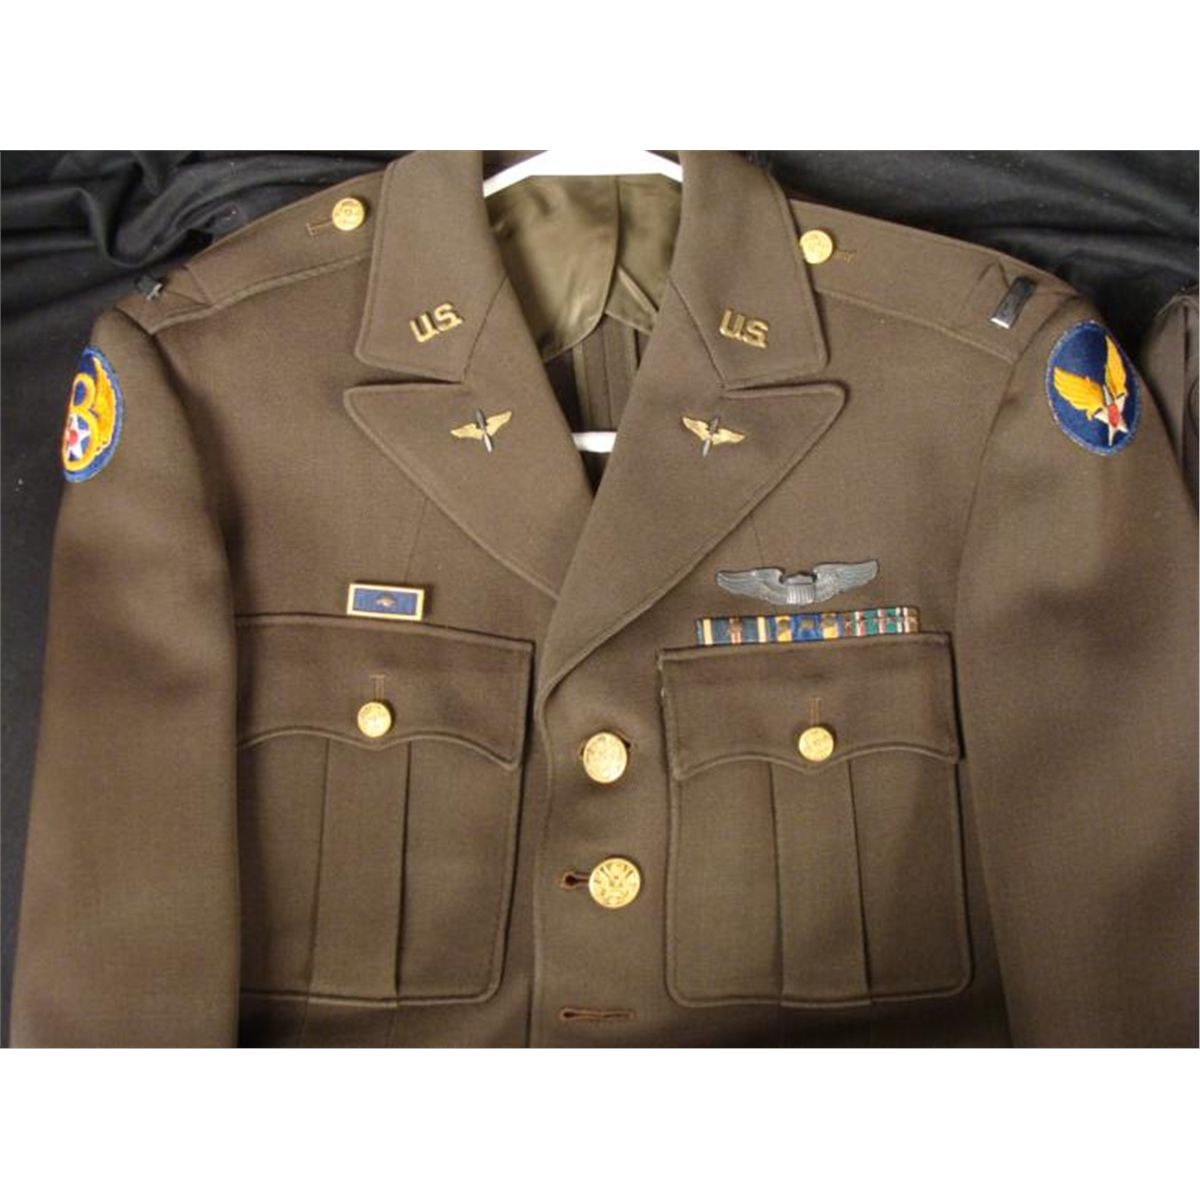 US military uniforms: Why is the flag on the right